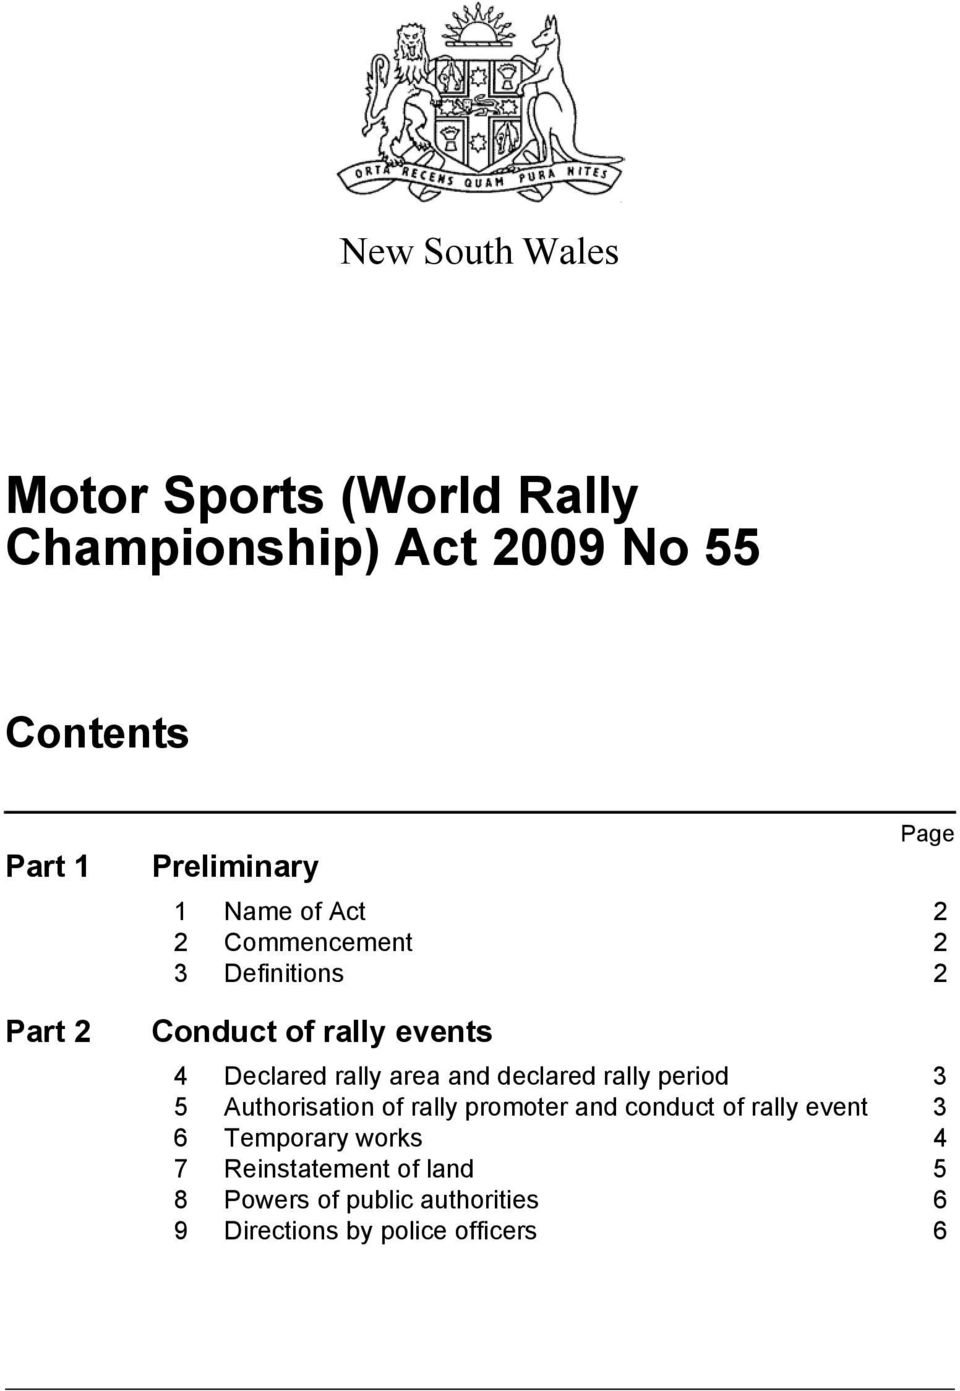 rally area and declared rally period 3 5 Authorisation of rally promoter and conduct of rally event 3